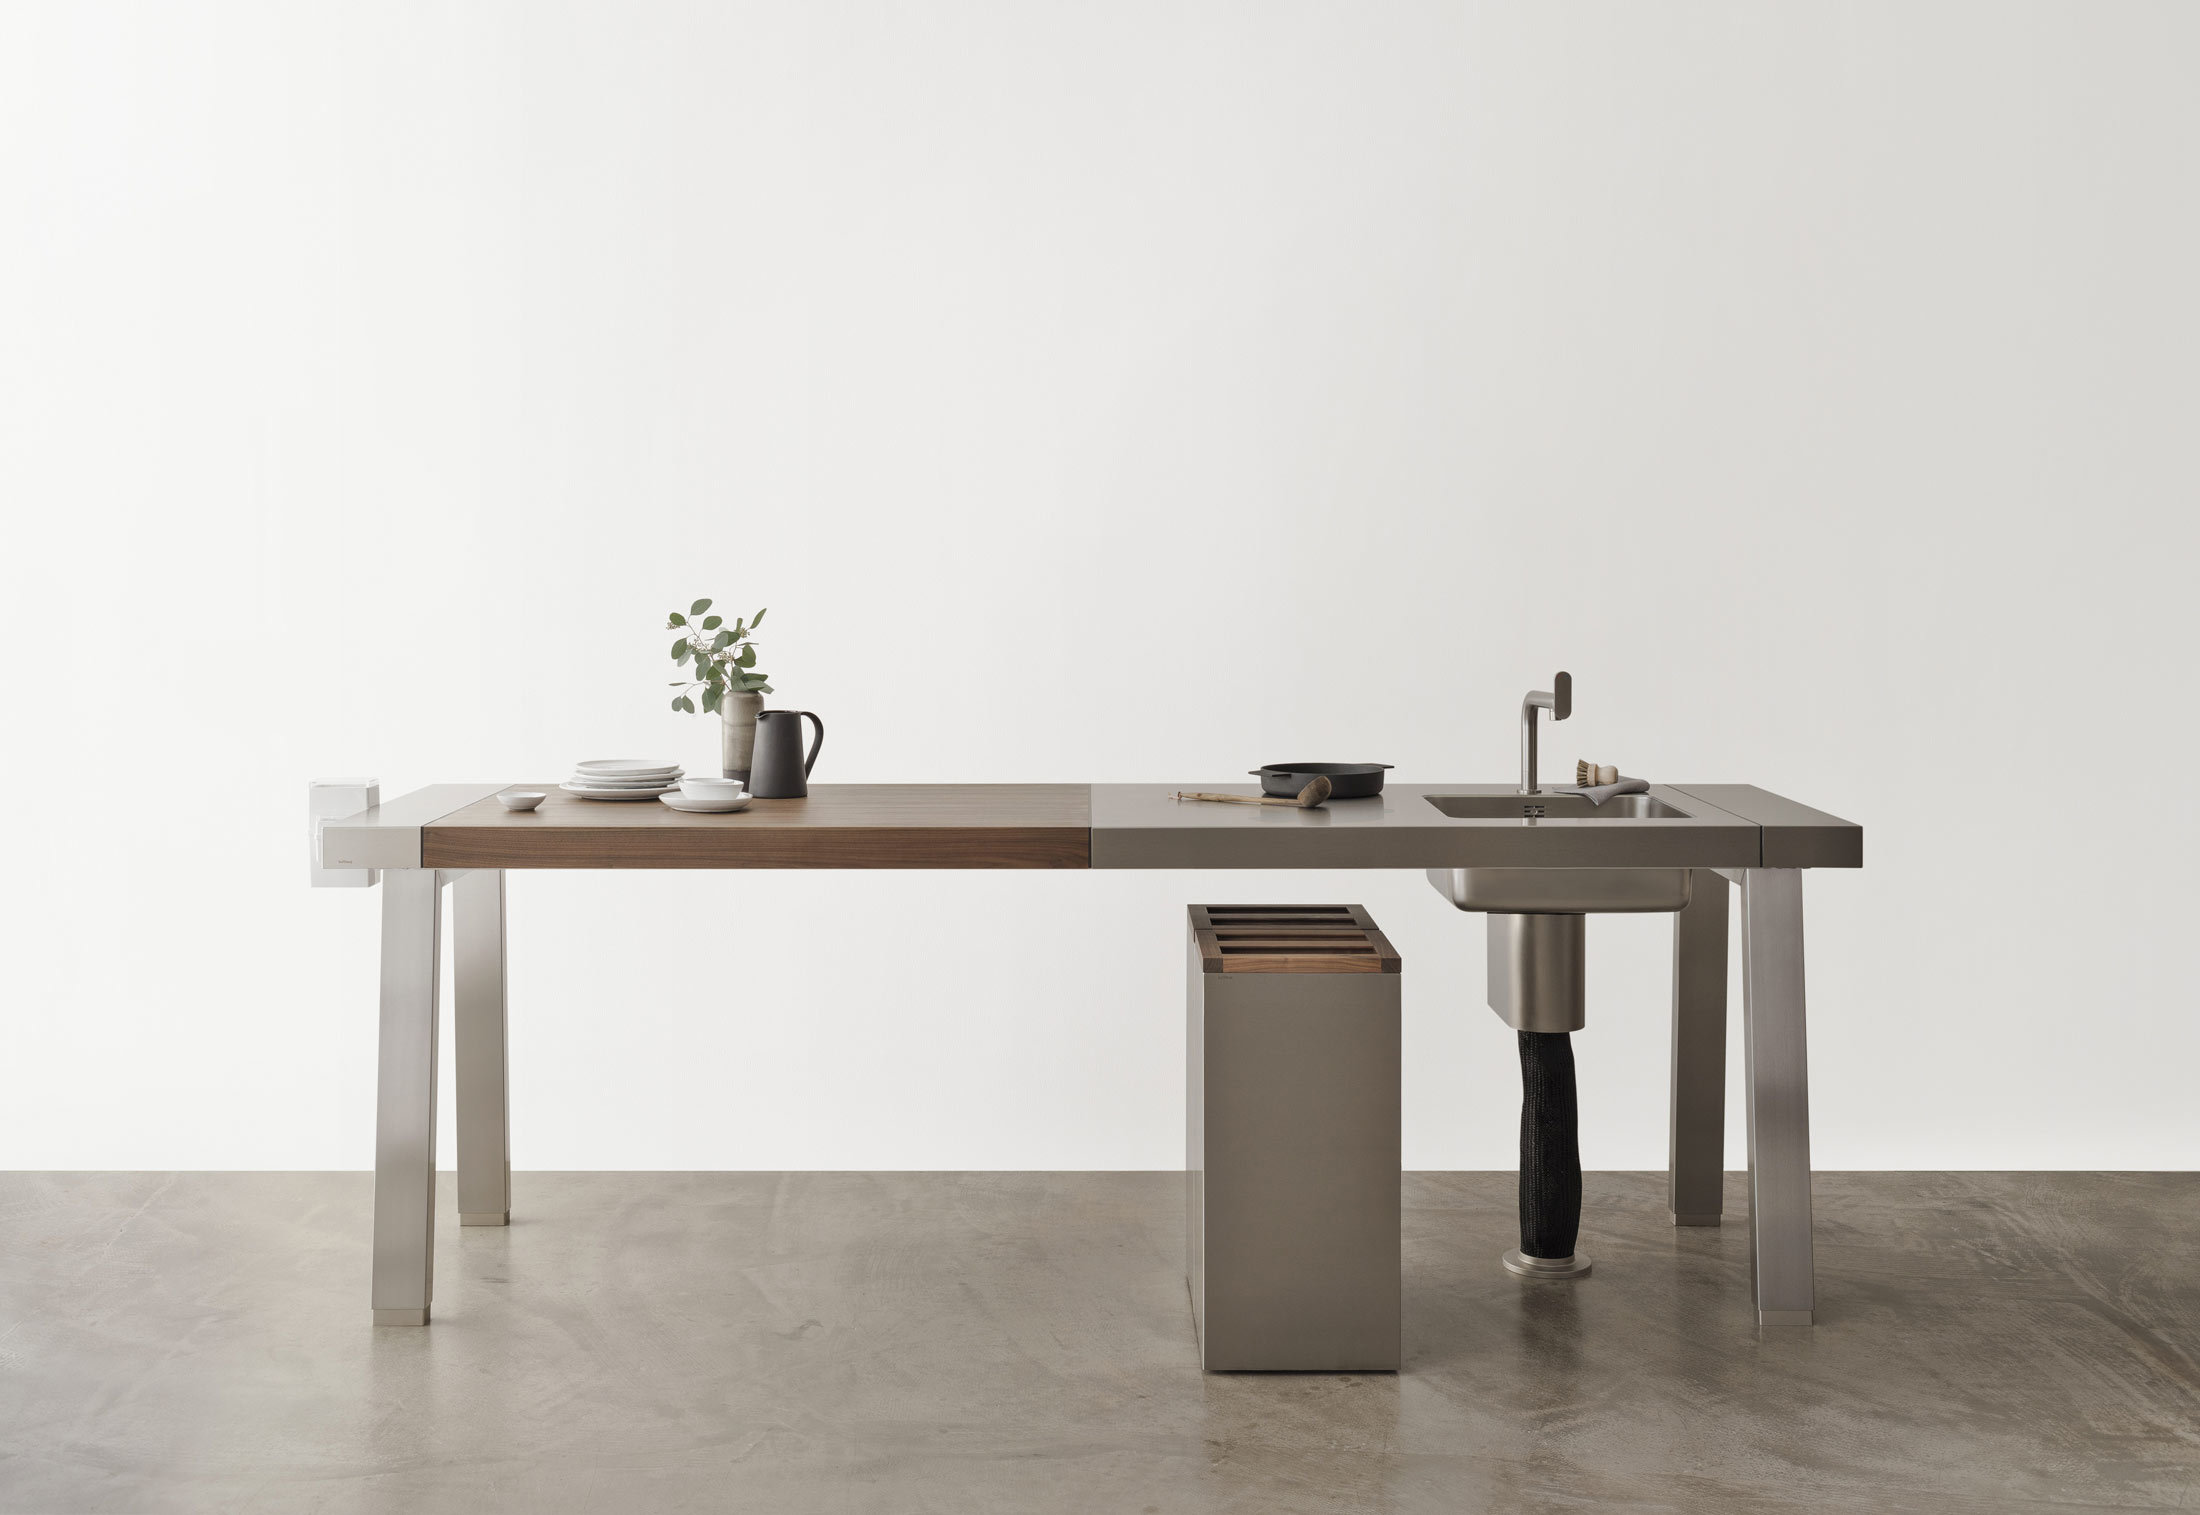 bulthaup b2 kitchen workbench by bulthaup | STYLEPARK